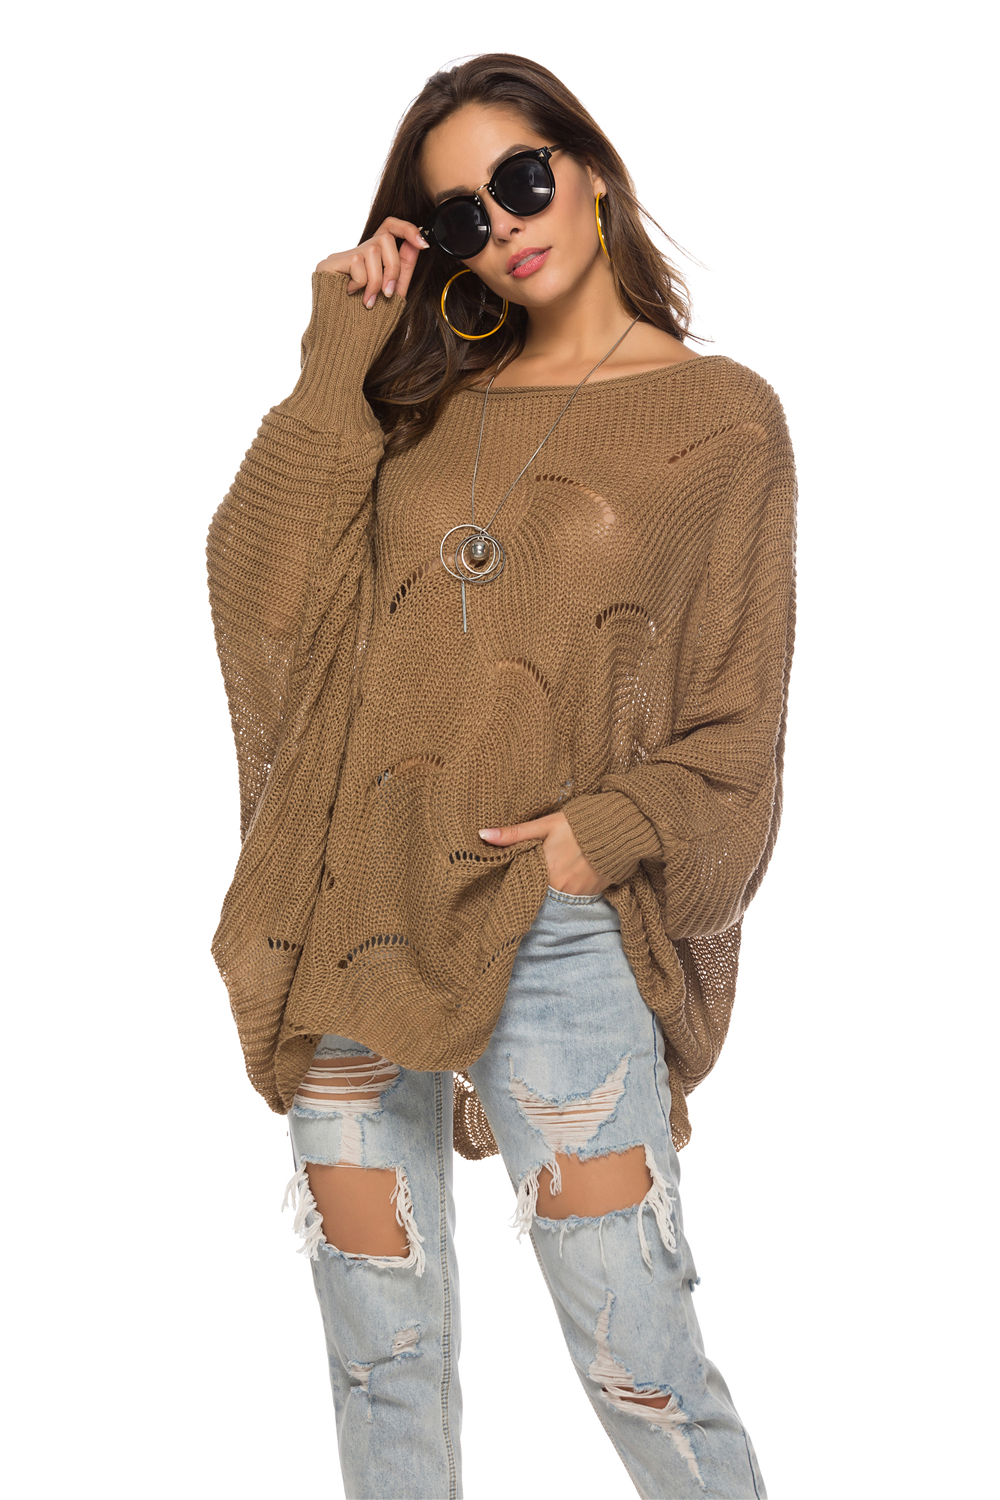 Hollow Out Knitted Sweater Women Autumn Winter Fashion O Neck Batwing Sleeve Solid Color Female Clothing Asymmetric Length Thin in Pullovers from Women 39 s Clothing